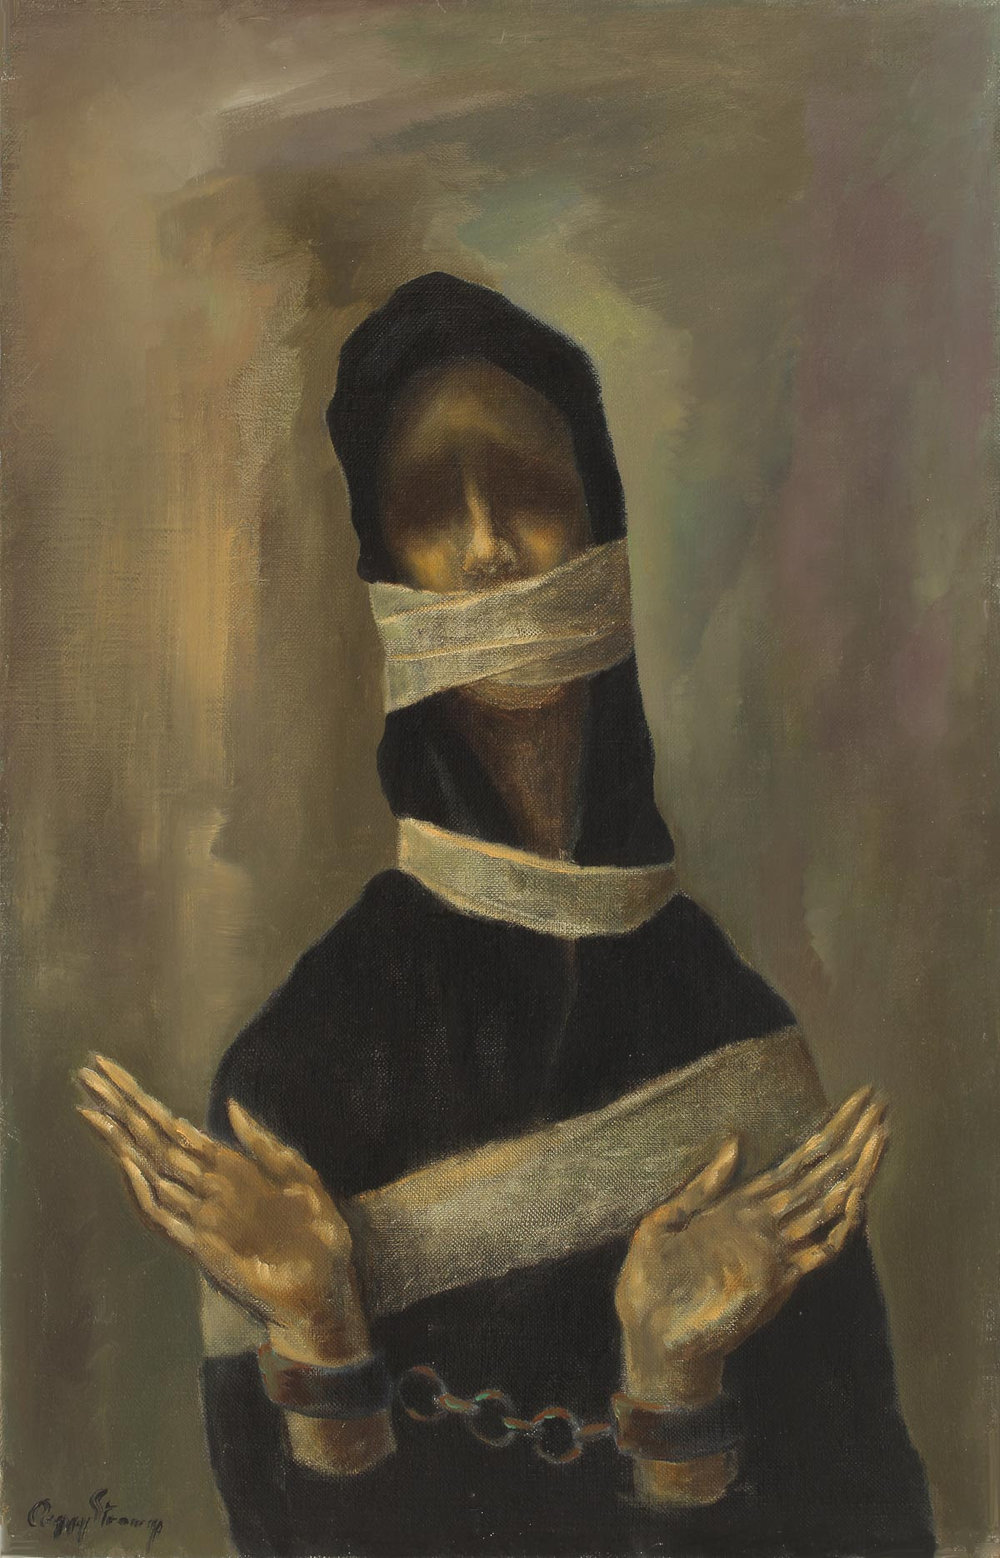 Peggy Strong, Untitled (Woman with Shackles), ca. 1948. Oil on canvas